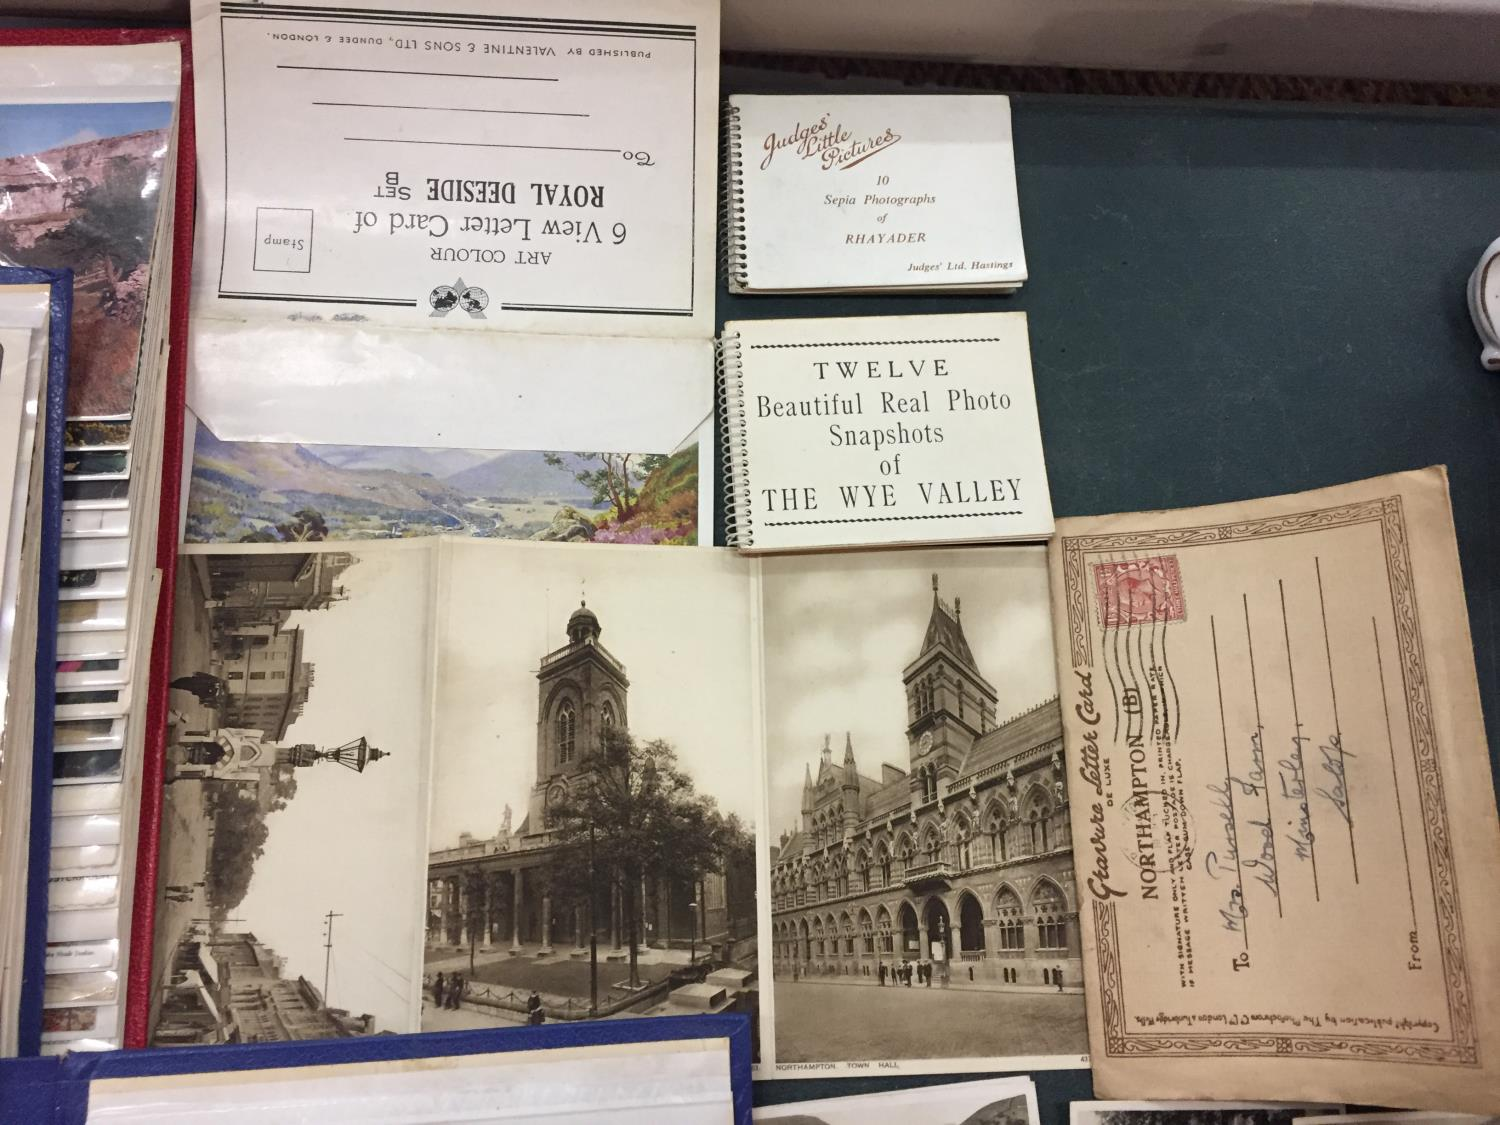 A LARGE COLLECTION OF 550+ ANTIQUE AND VINTAGE POSTCARDS RANGING FROM 1908-1970'S. MAINLEY UK - SOME - Image 13 of 14